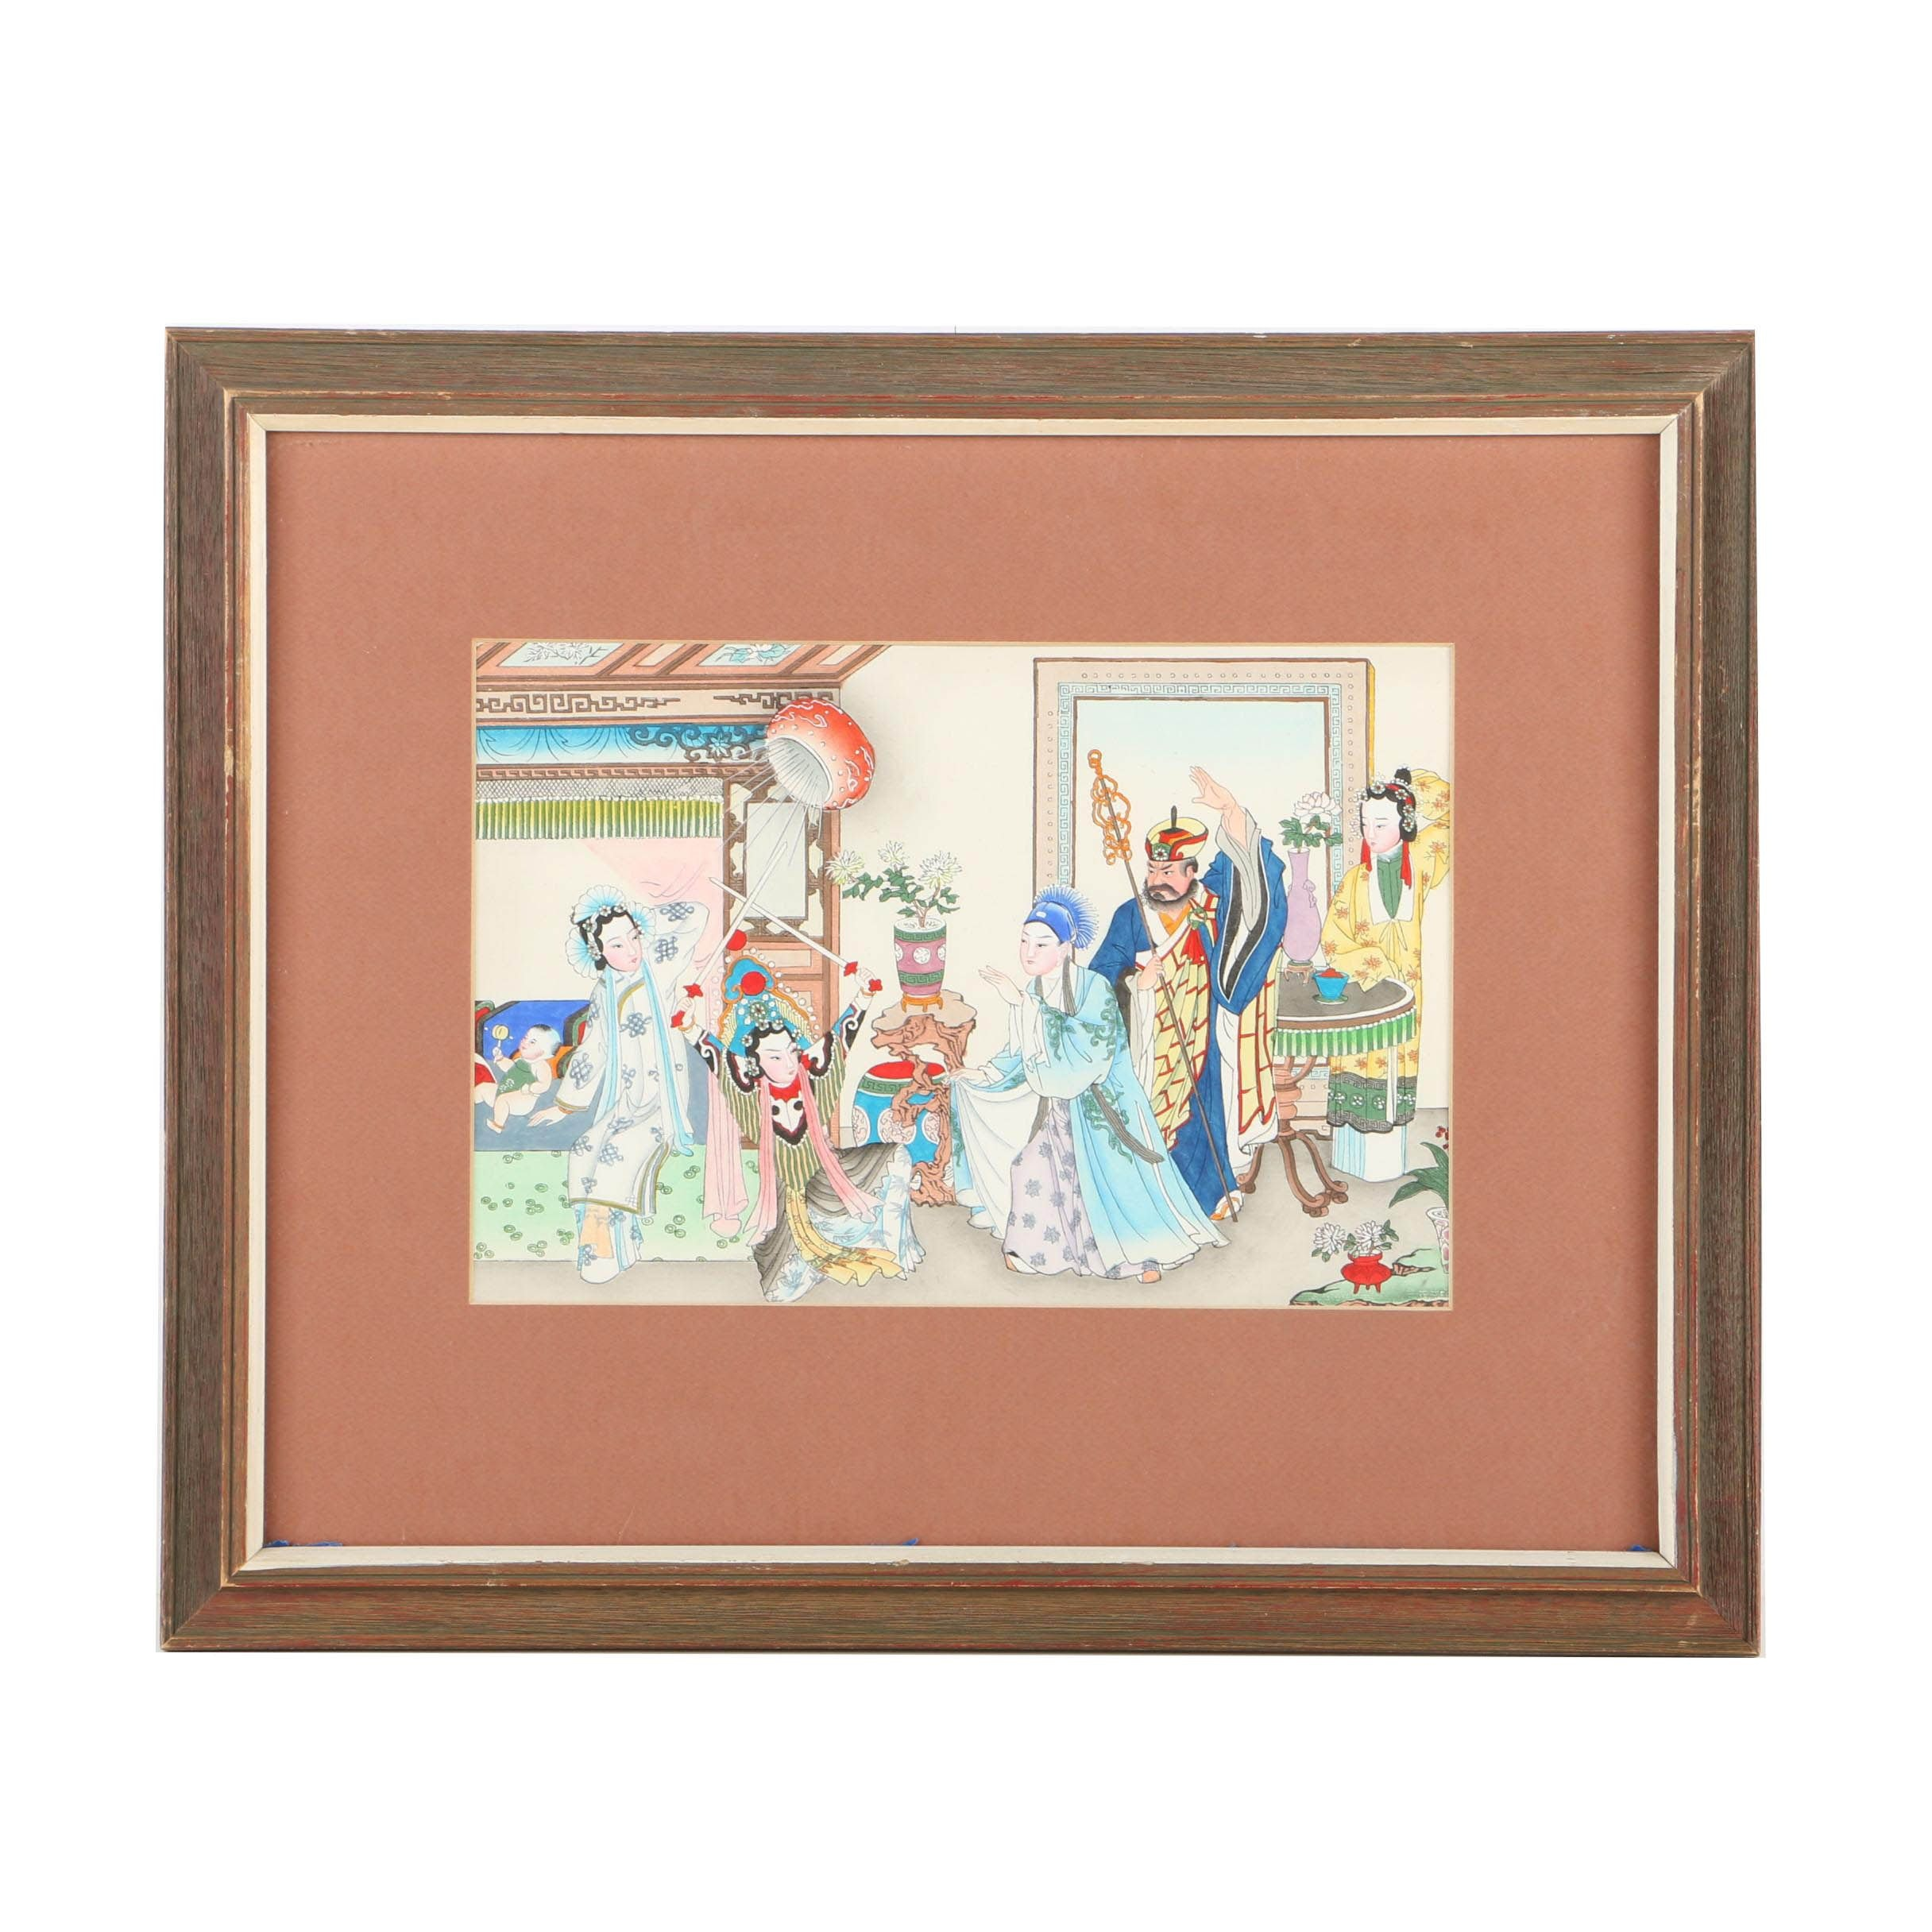 Chinese Hand-Painted Woodblock Print on Paper